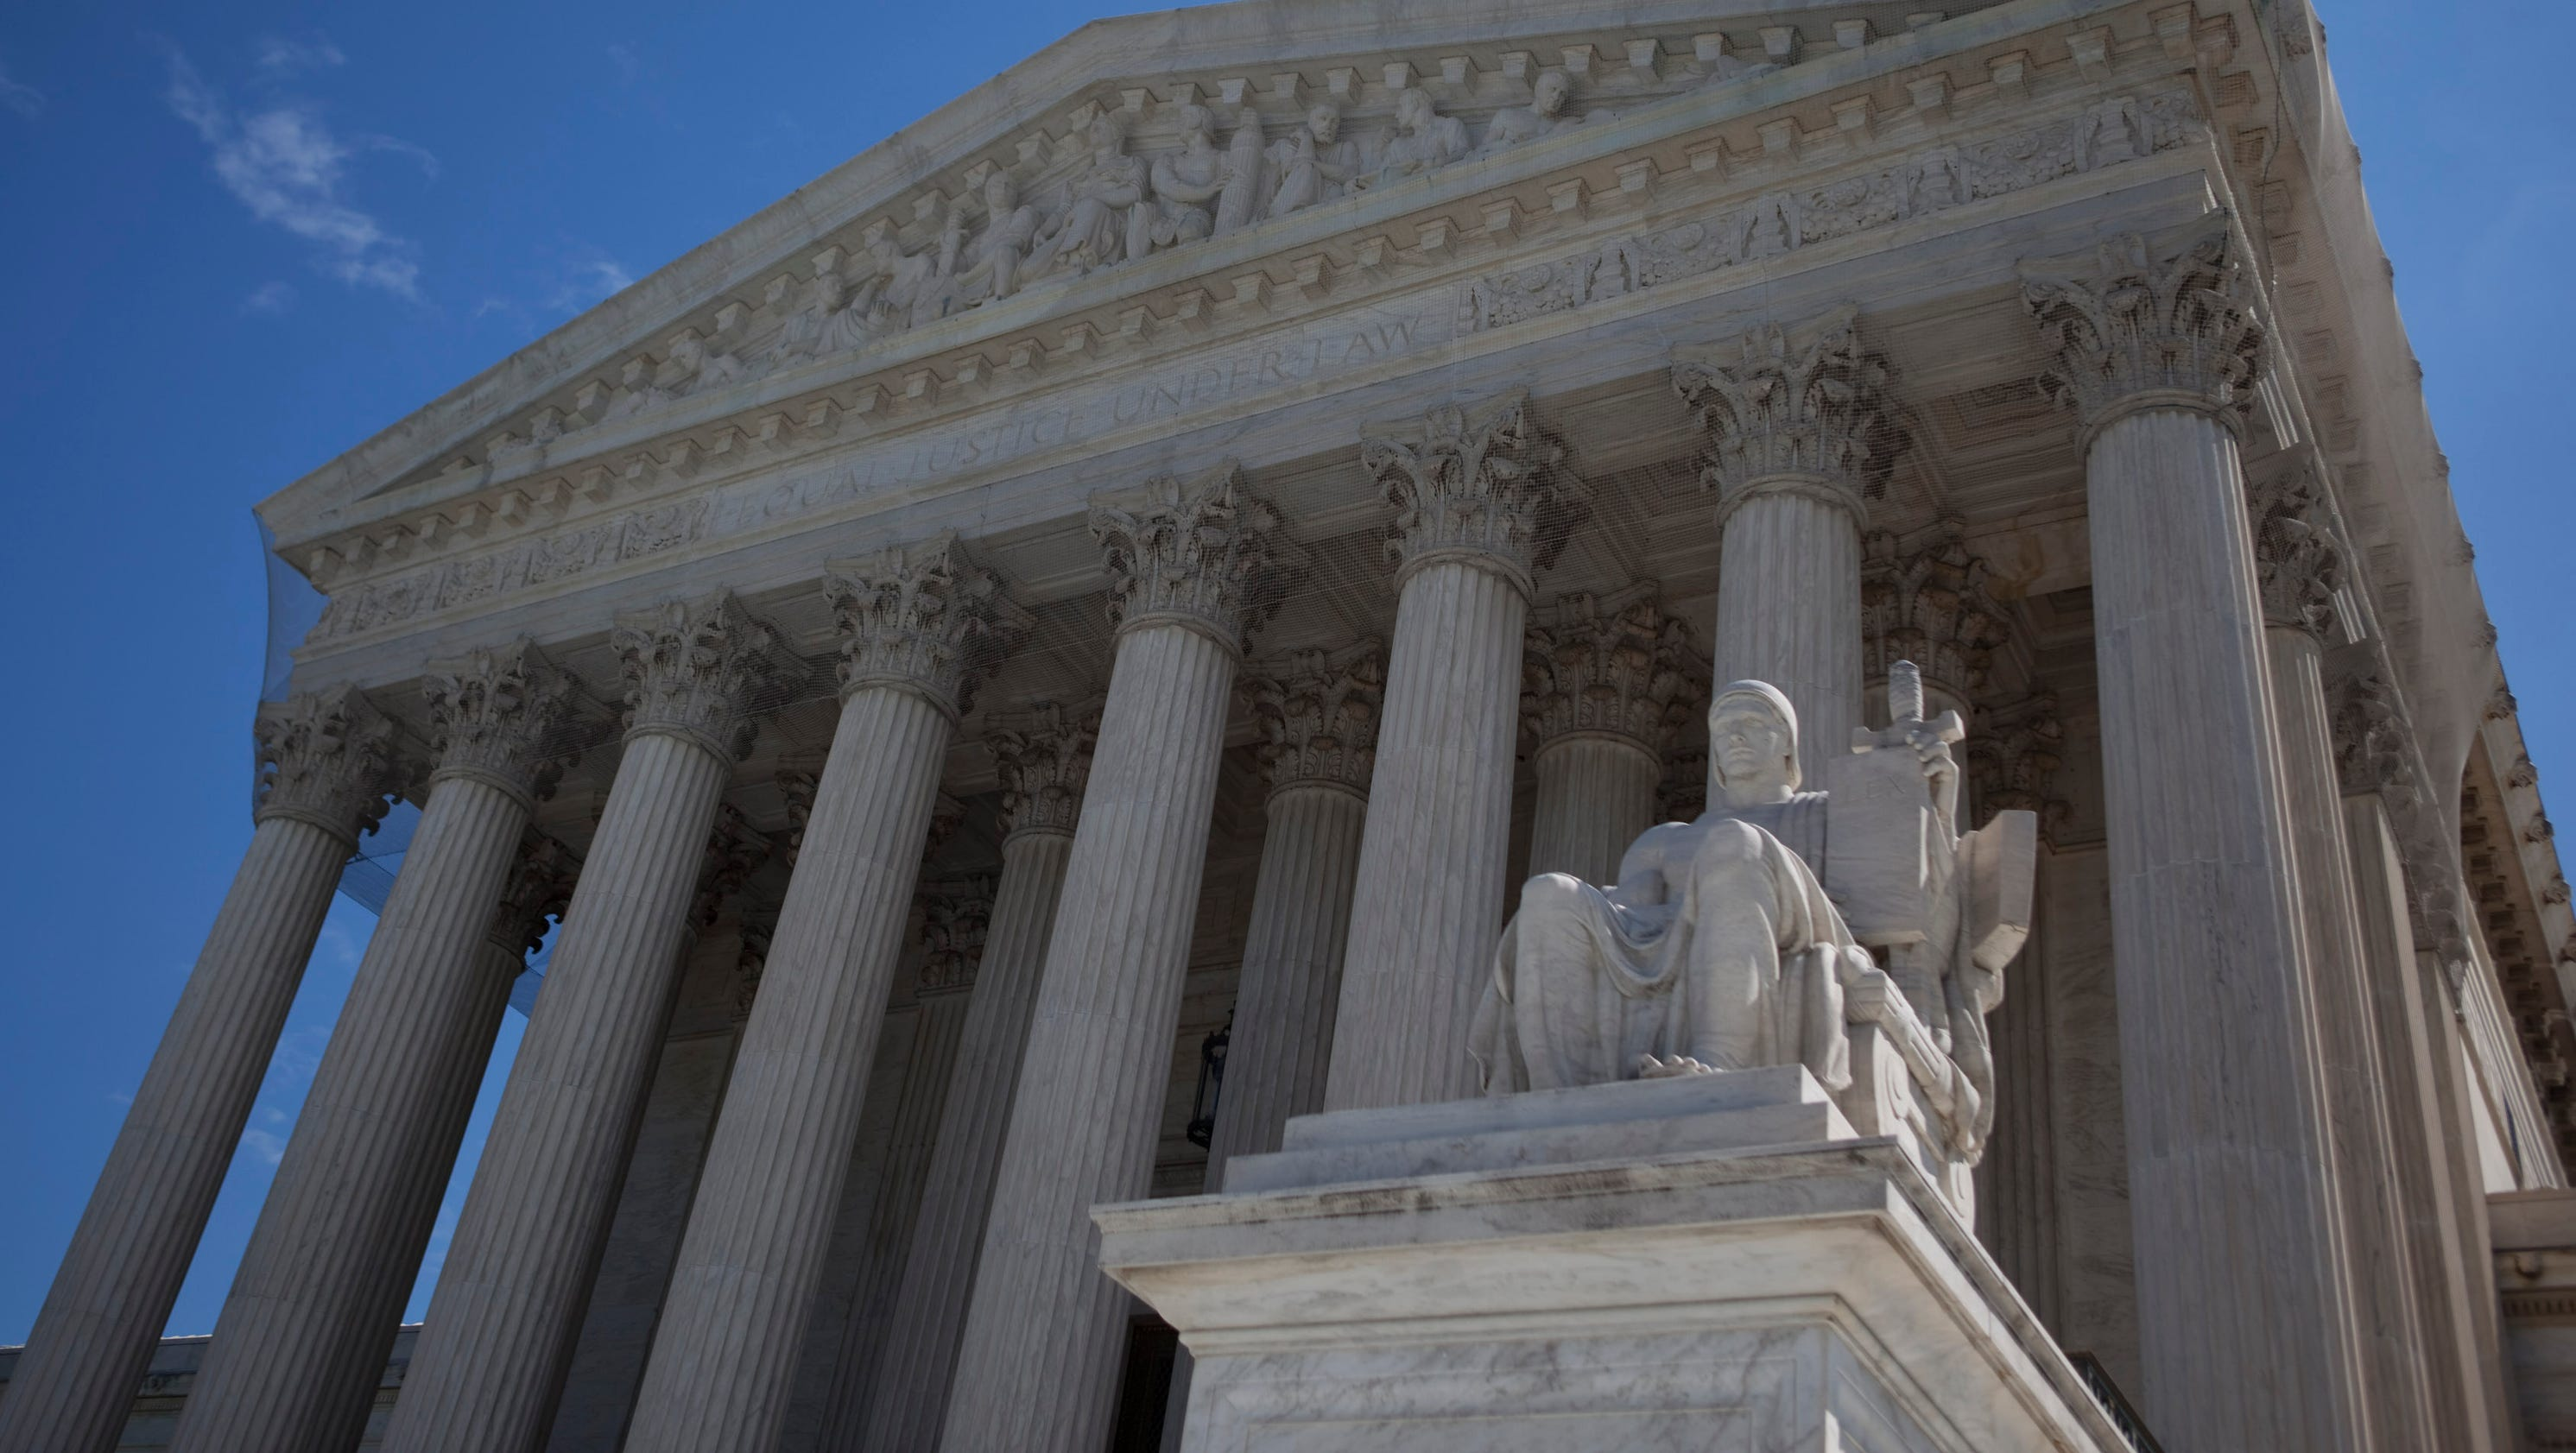 At the Supreme Court, an uptick in unanimity